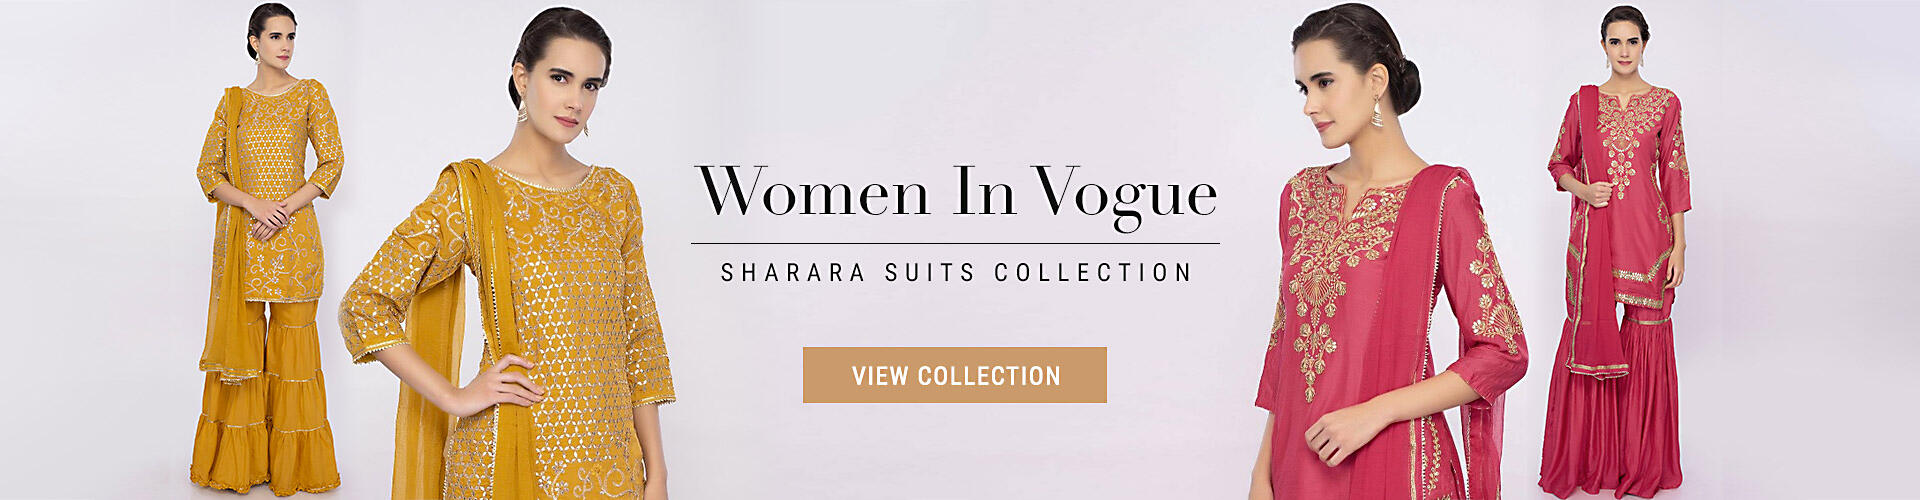 Sharara suits collection